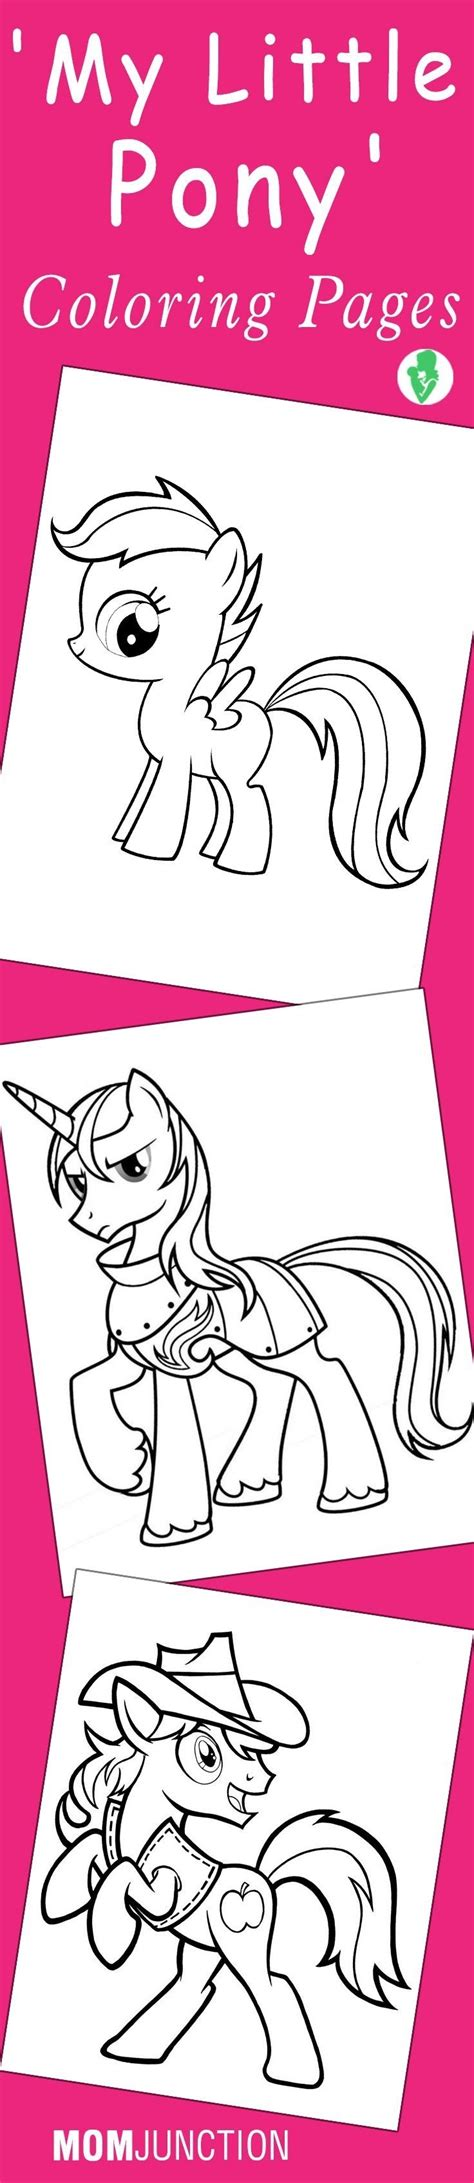 Mom Junction Coloring Pages My Little Pony | mom junction coloring pages my little pony fun coloring